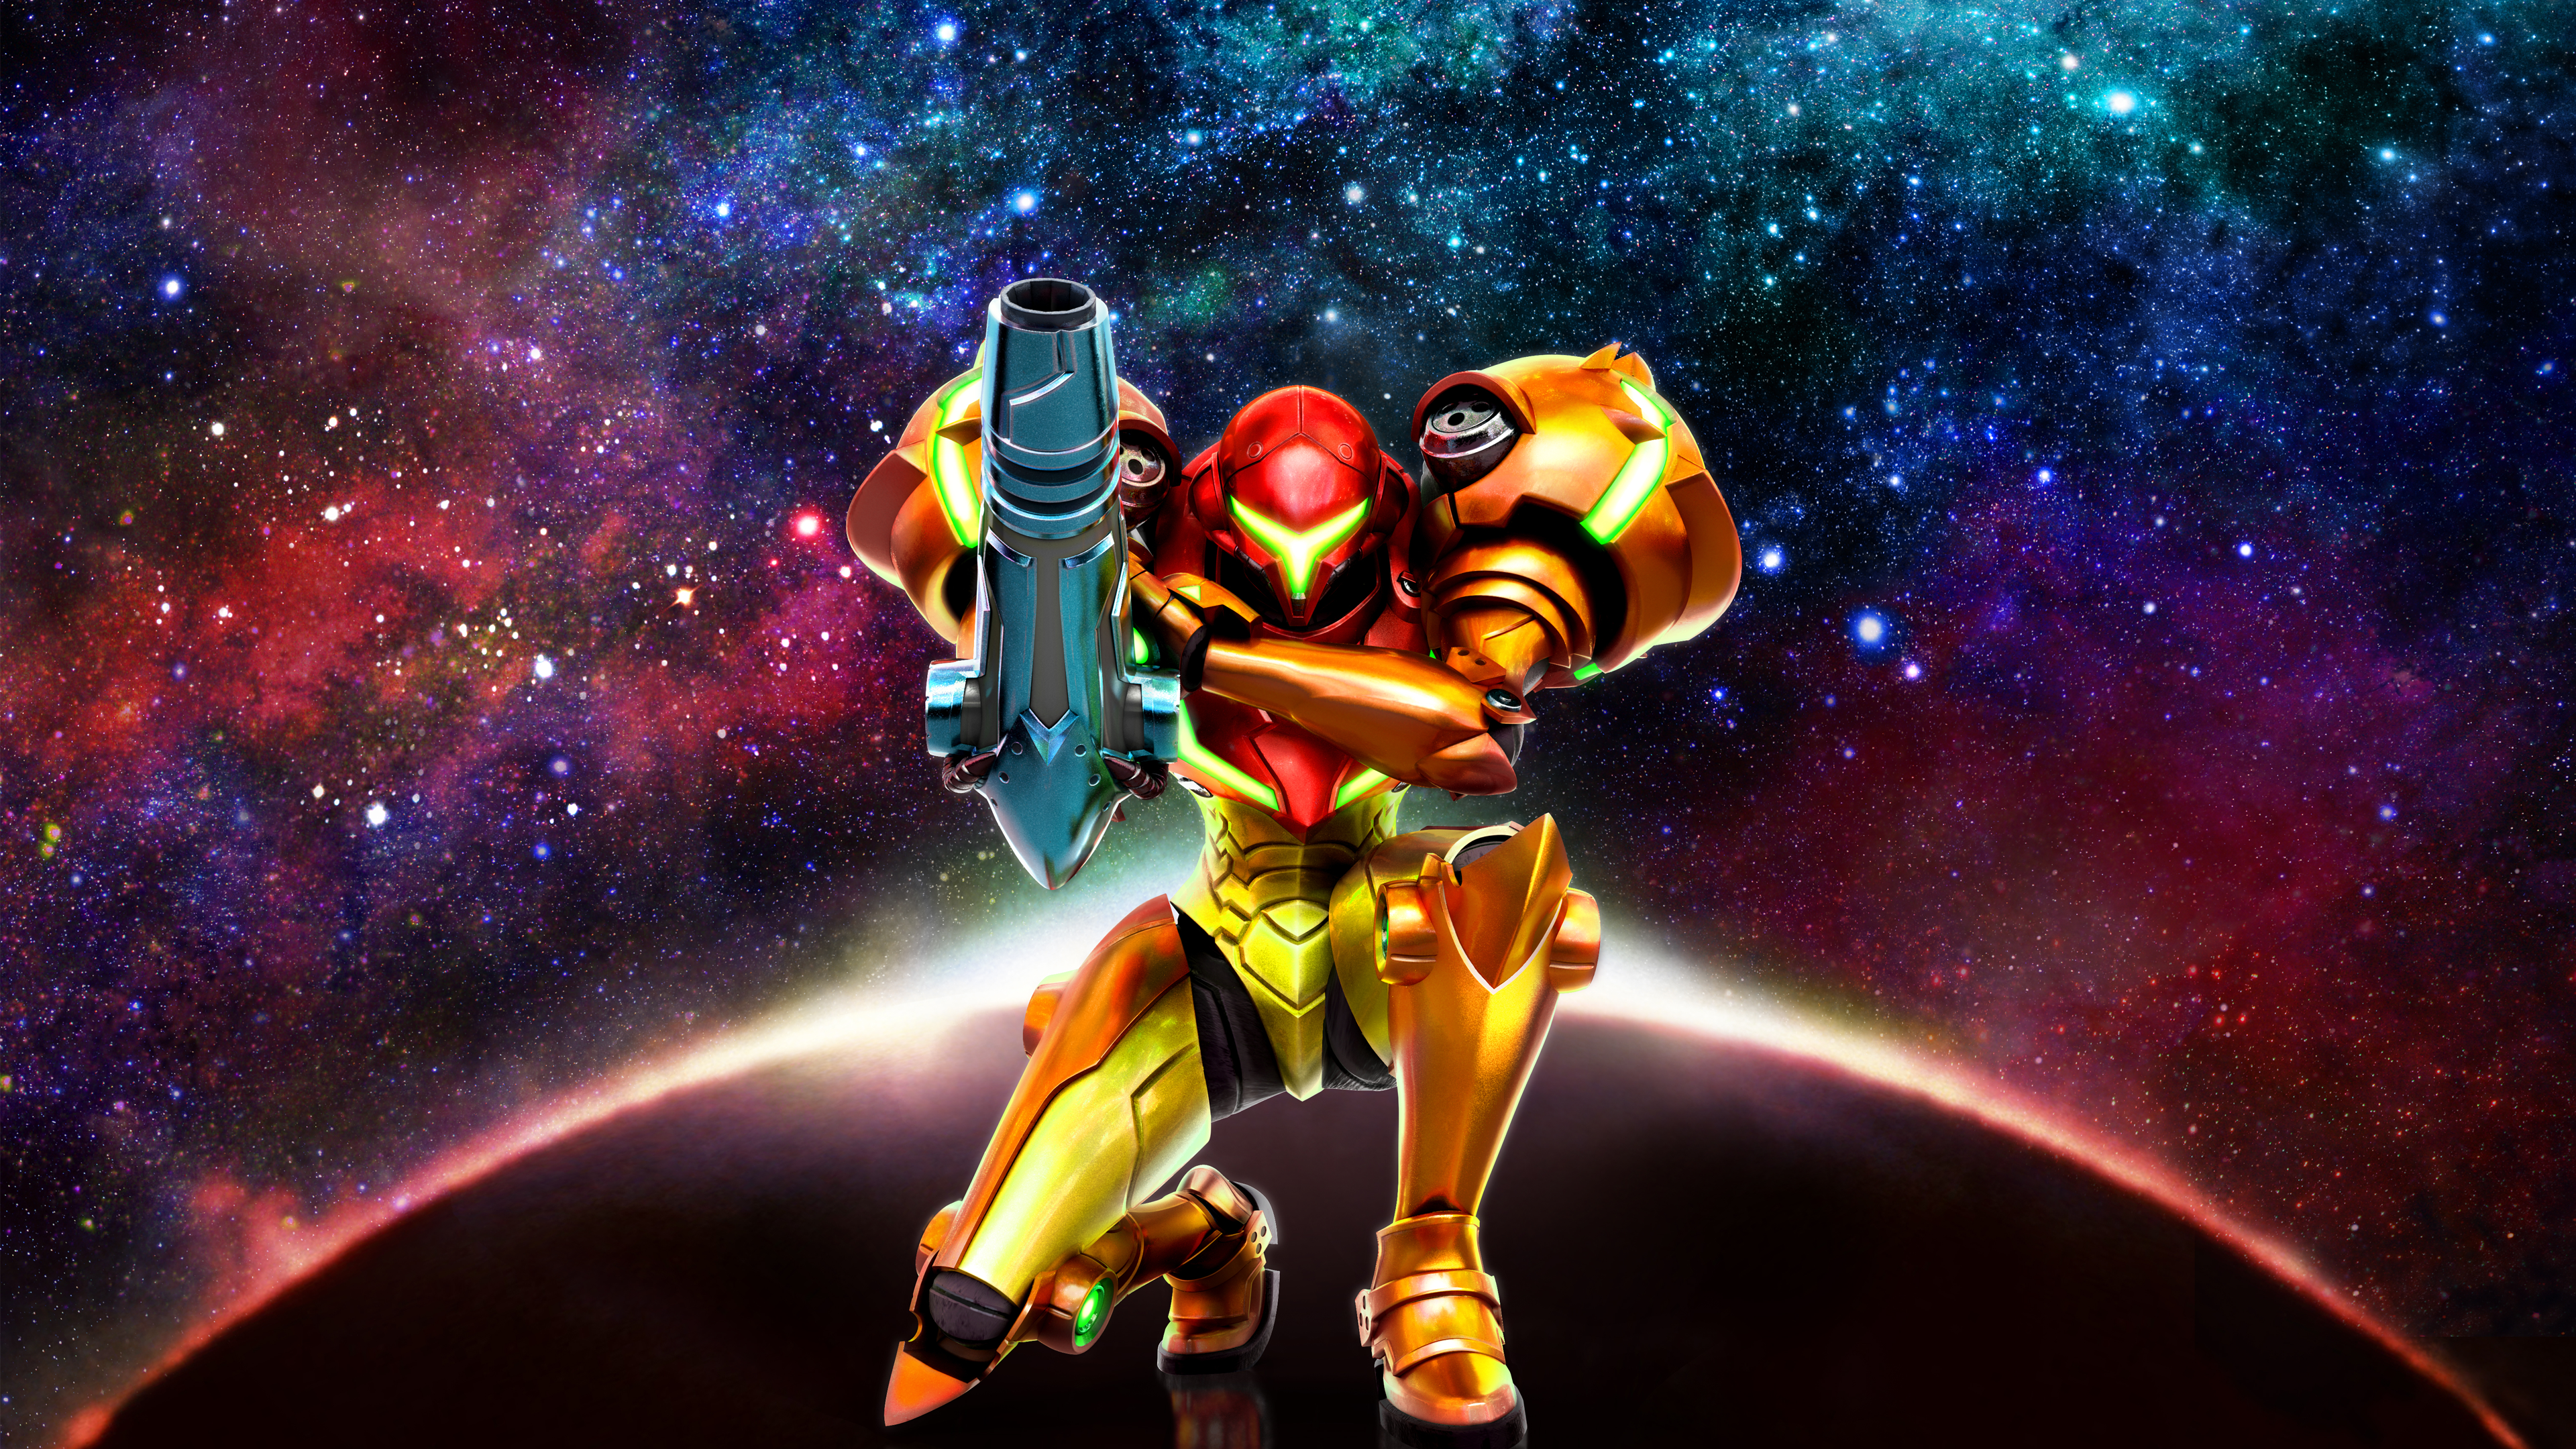 Samus Wallpaper [OC] : Metroid